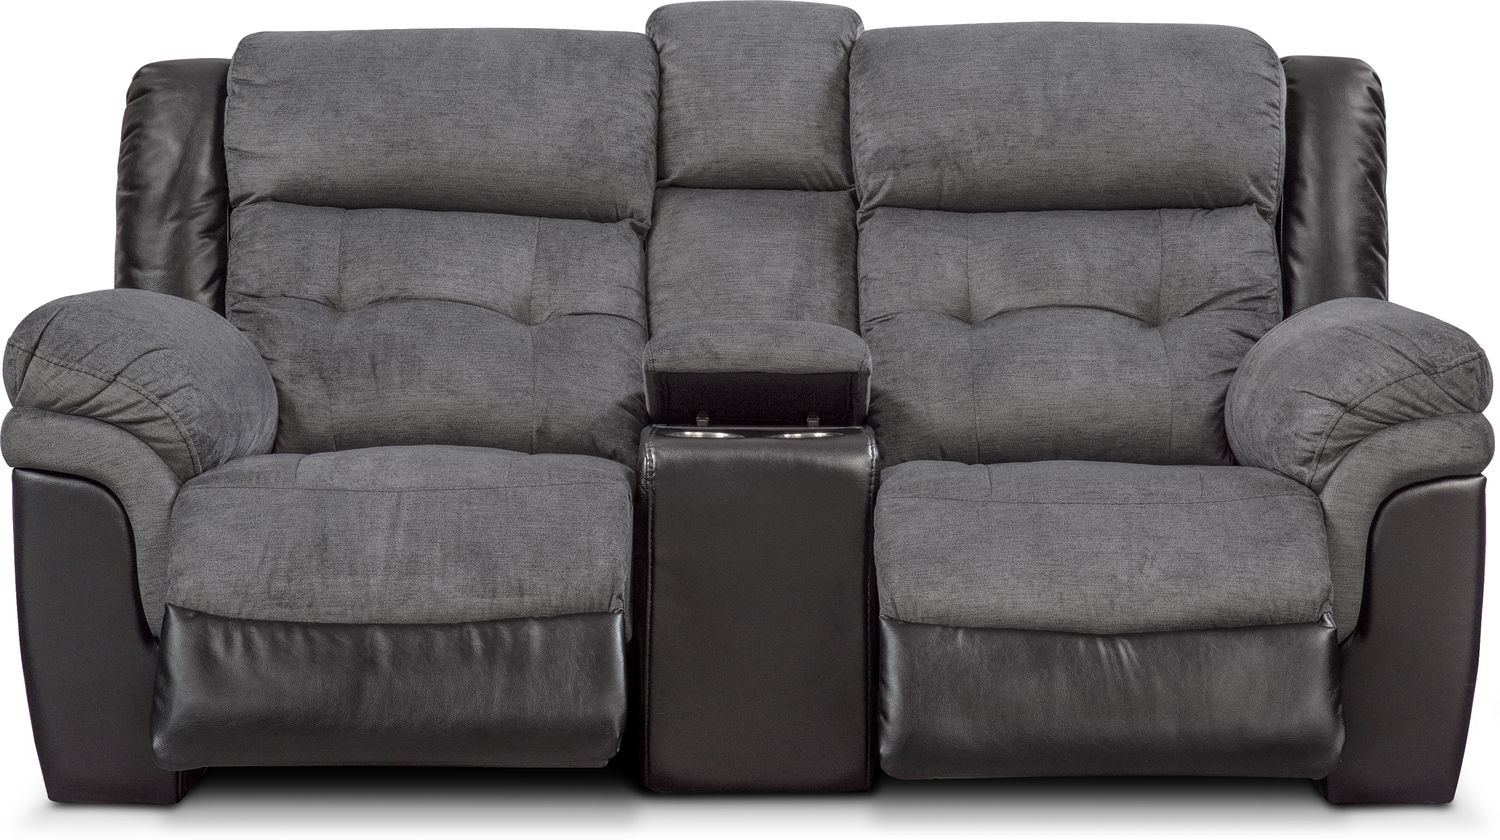 Tacoma Dual Power Reclining Loveseat With Console Value